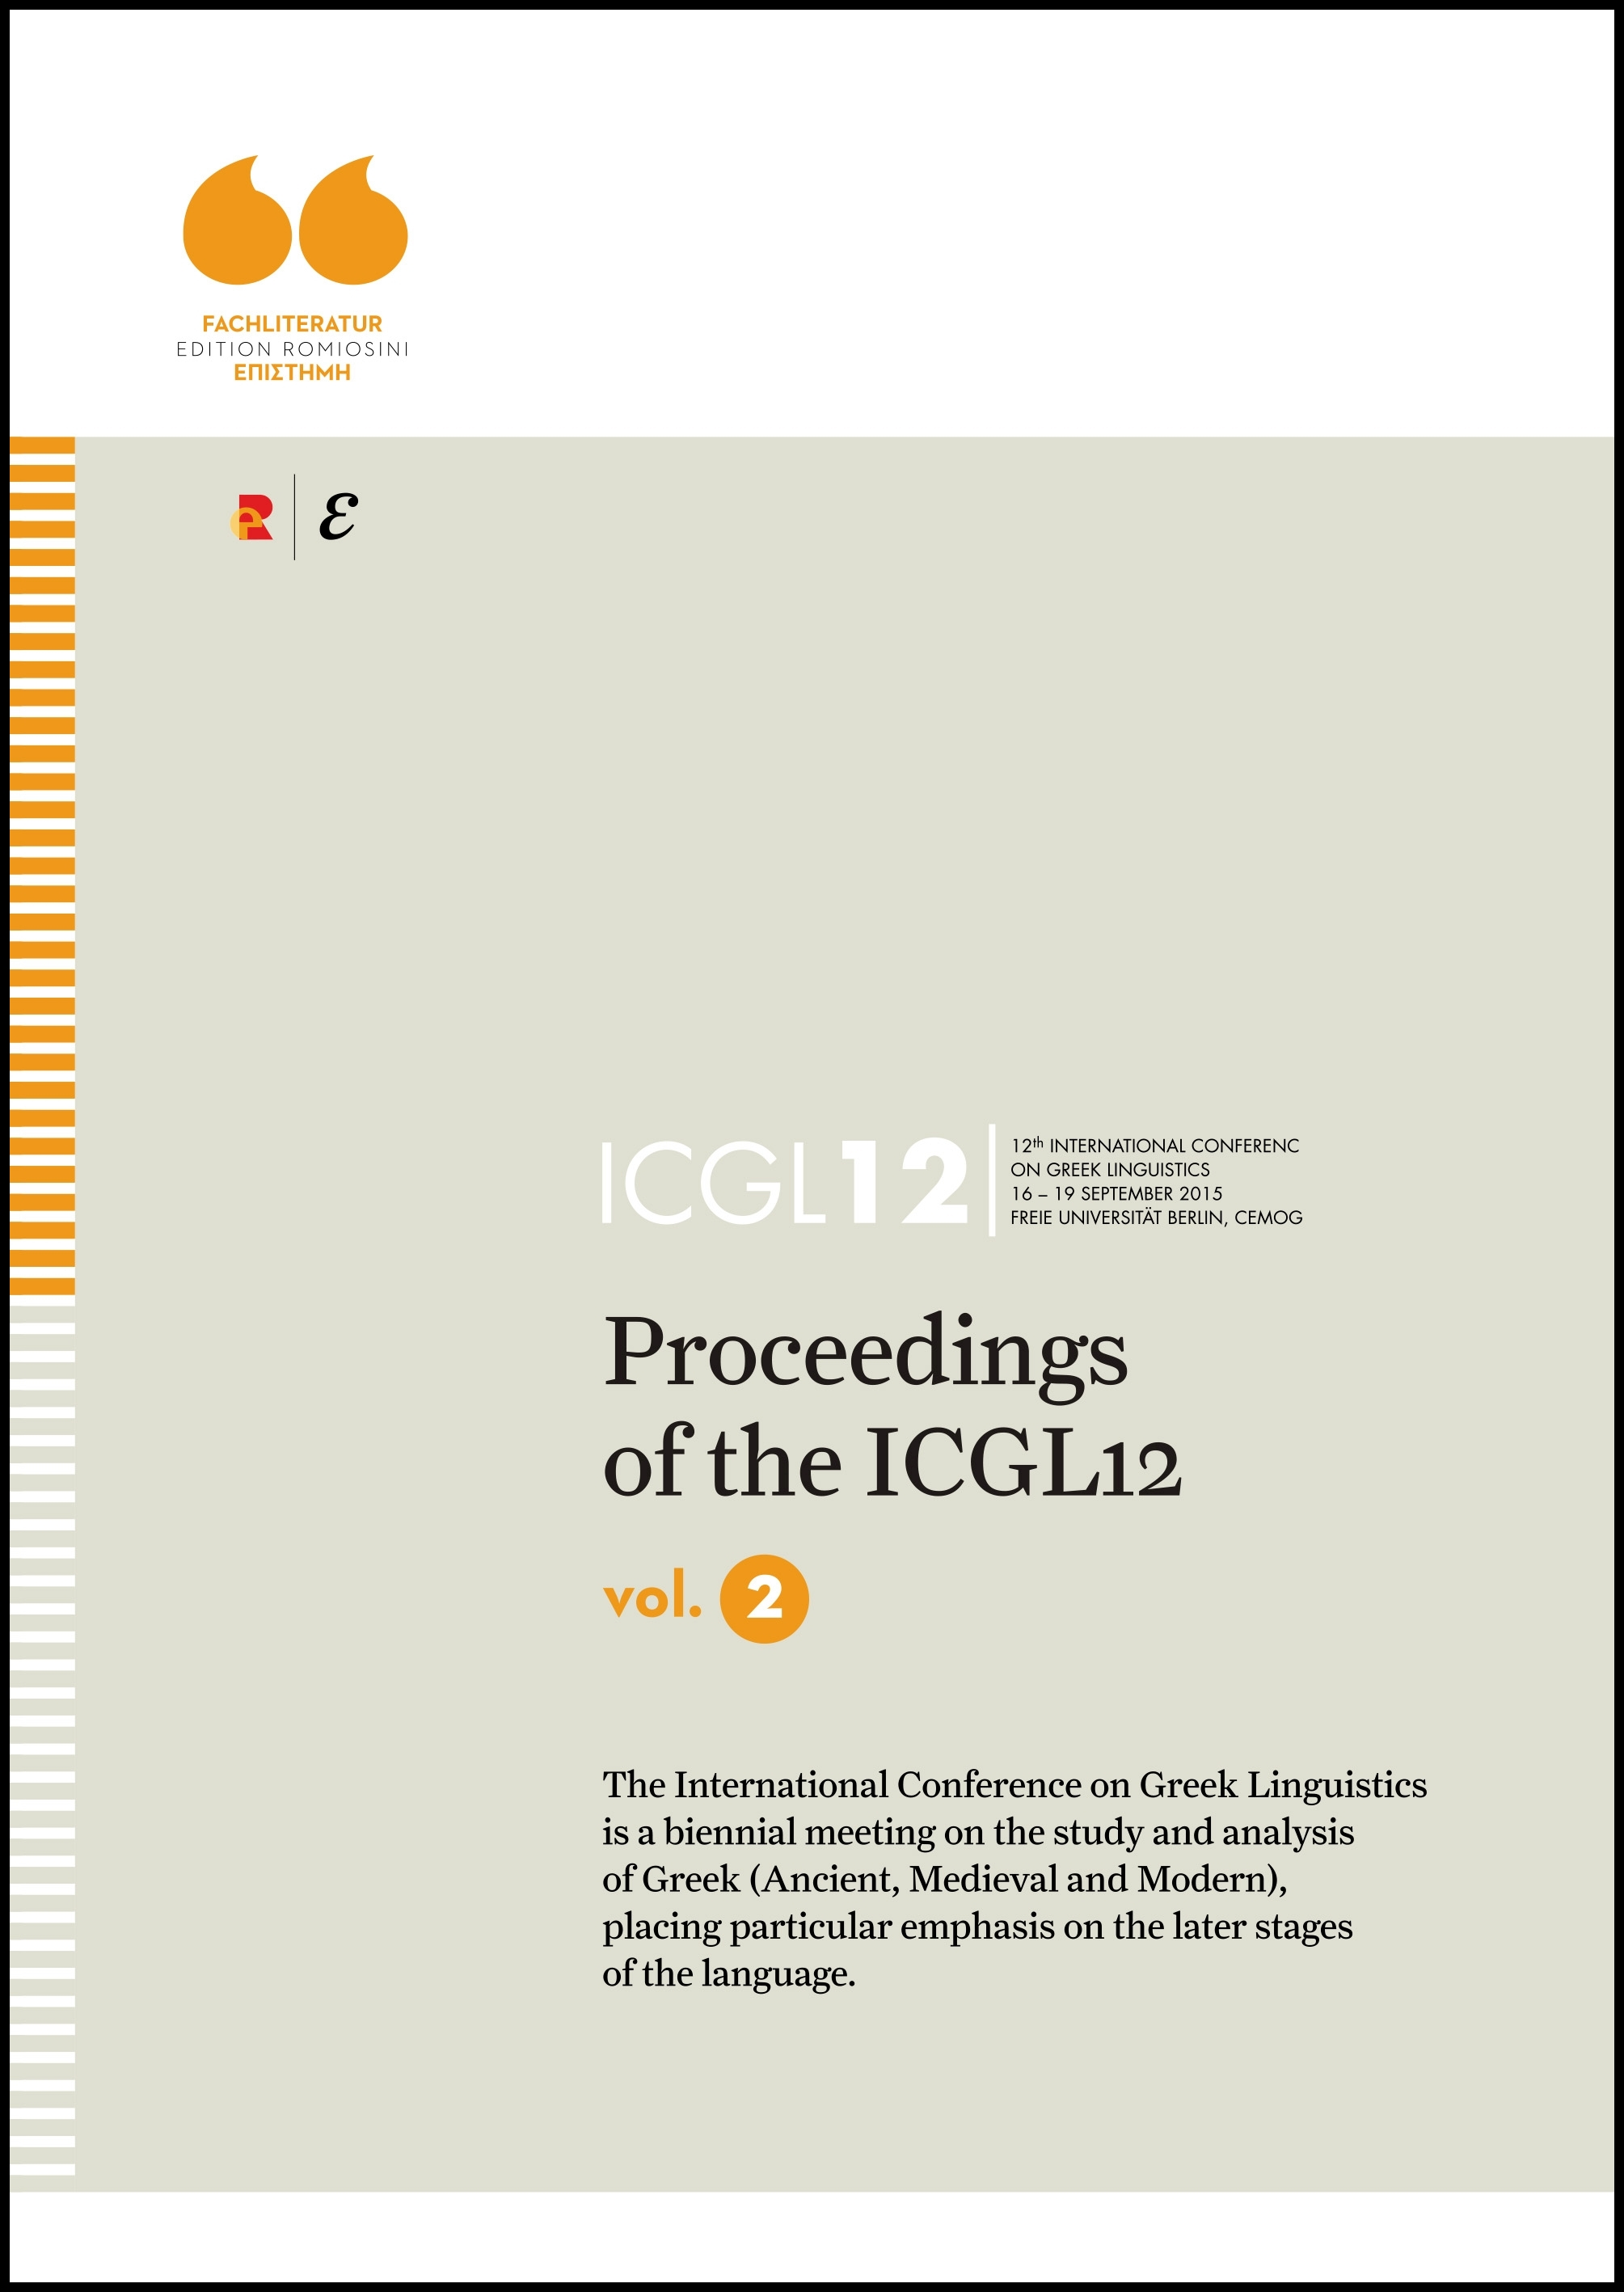 Titelbild für Proceedings of the ICGL12, Vol. 2